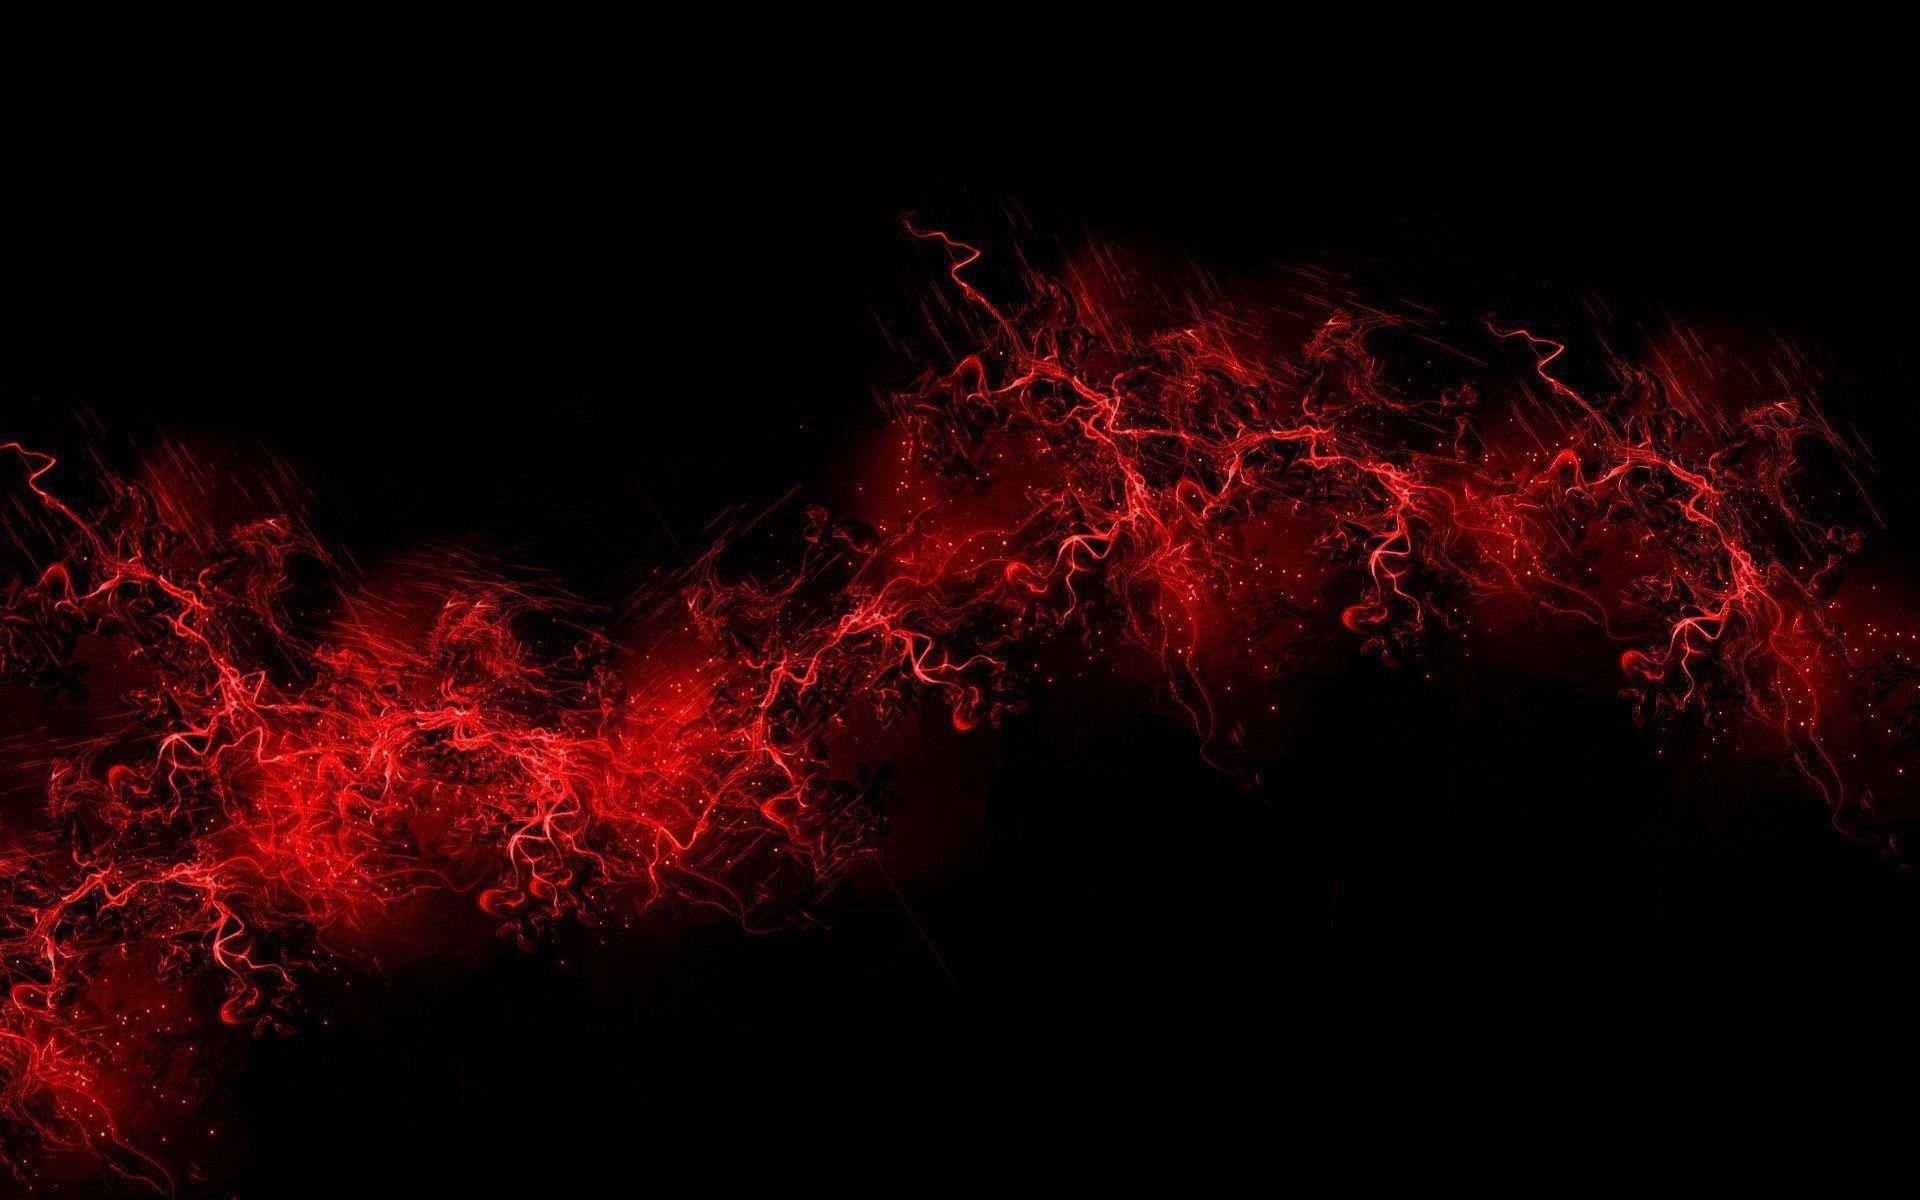 red black background hd - photo #2